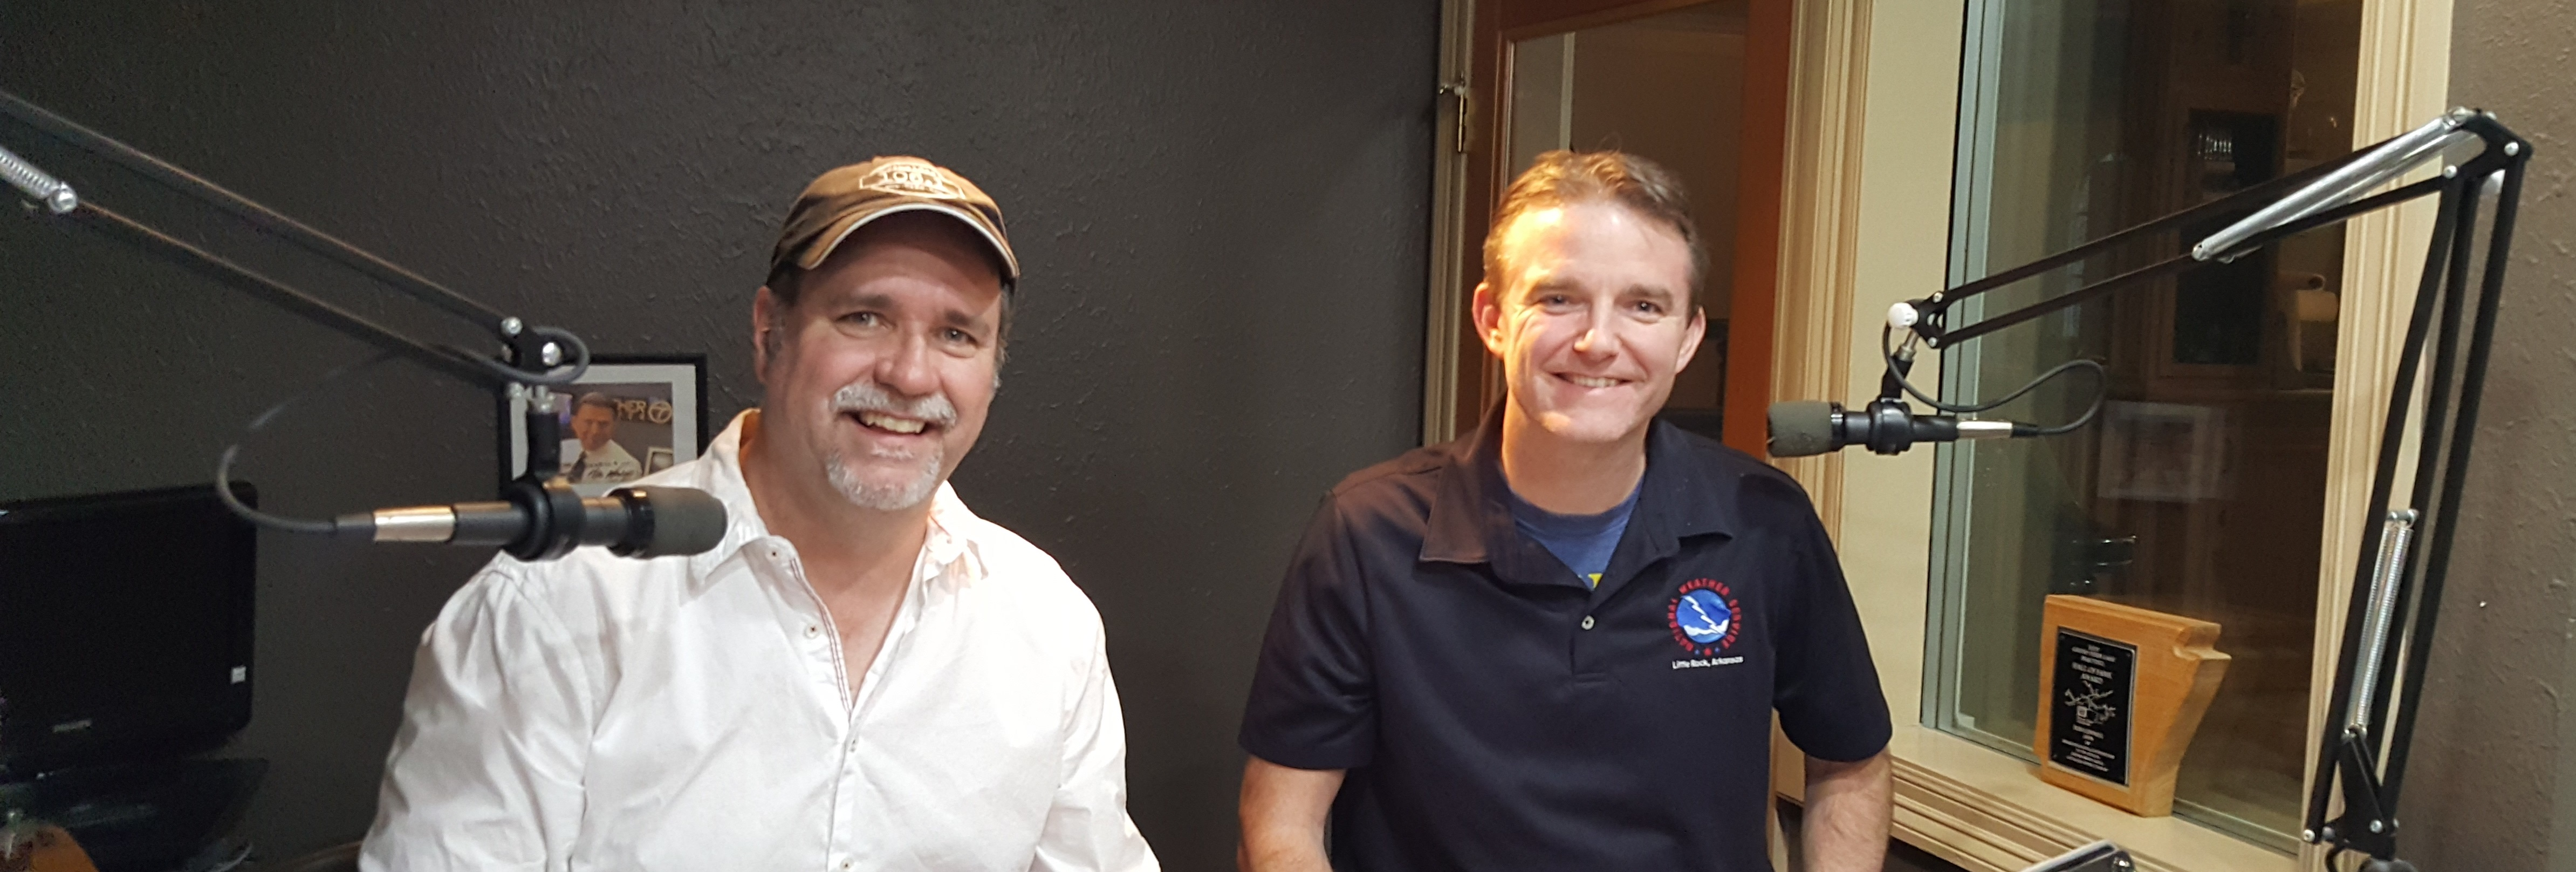 Bob Connell and Dennis Cavanaugh with the NWS Little Rock